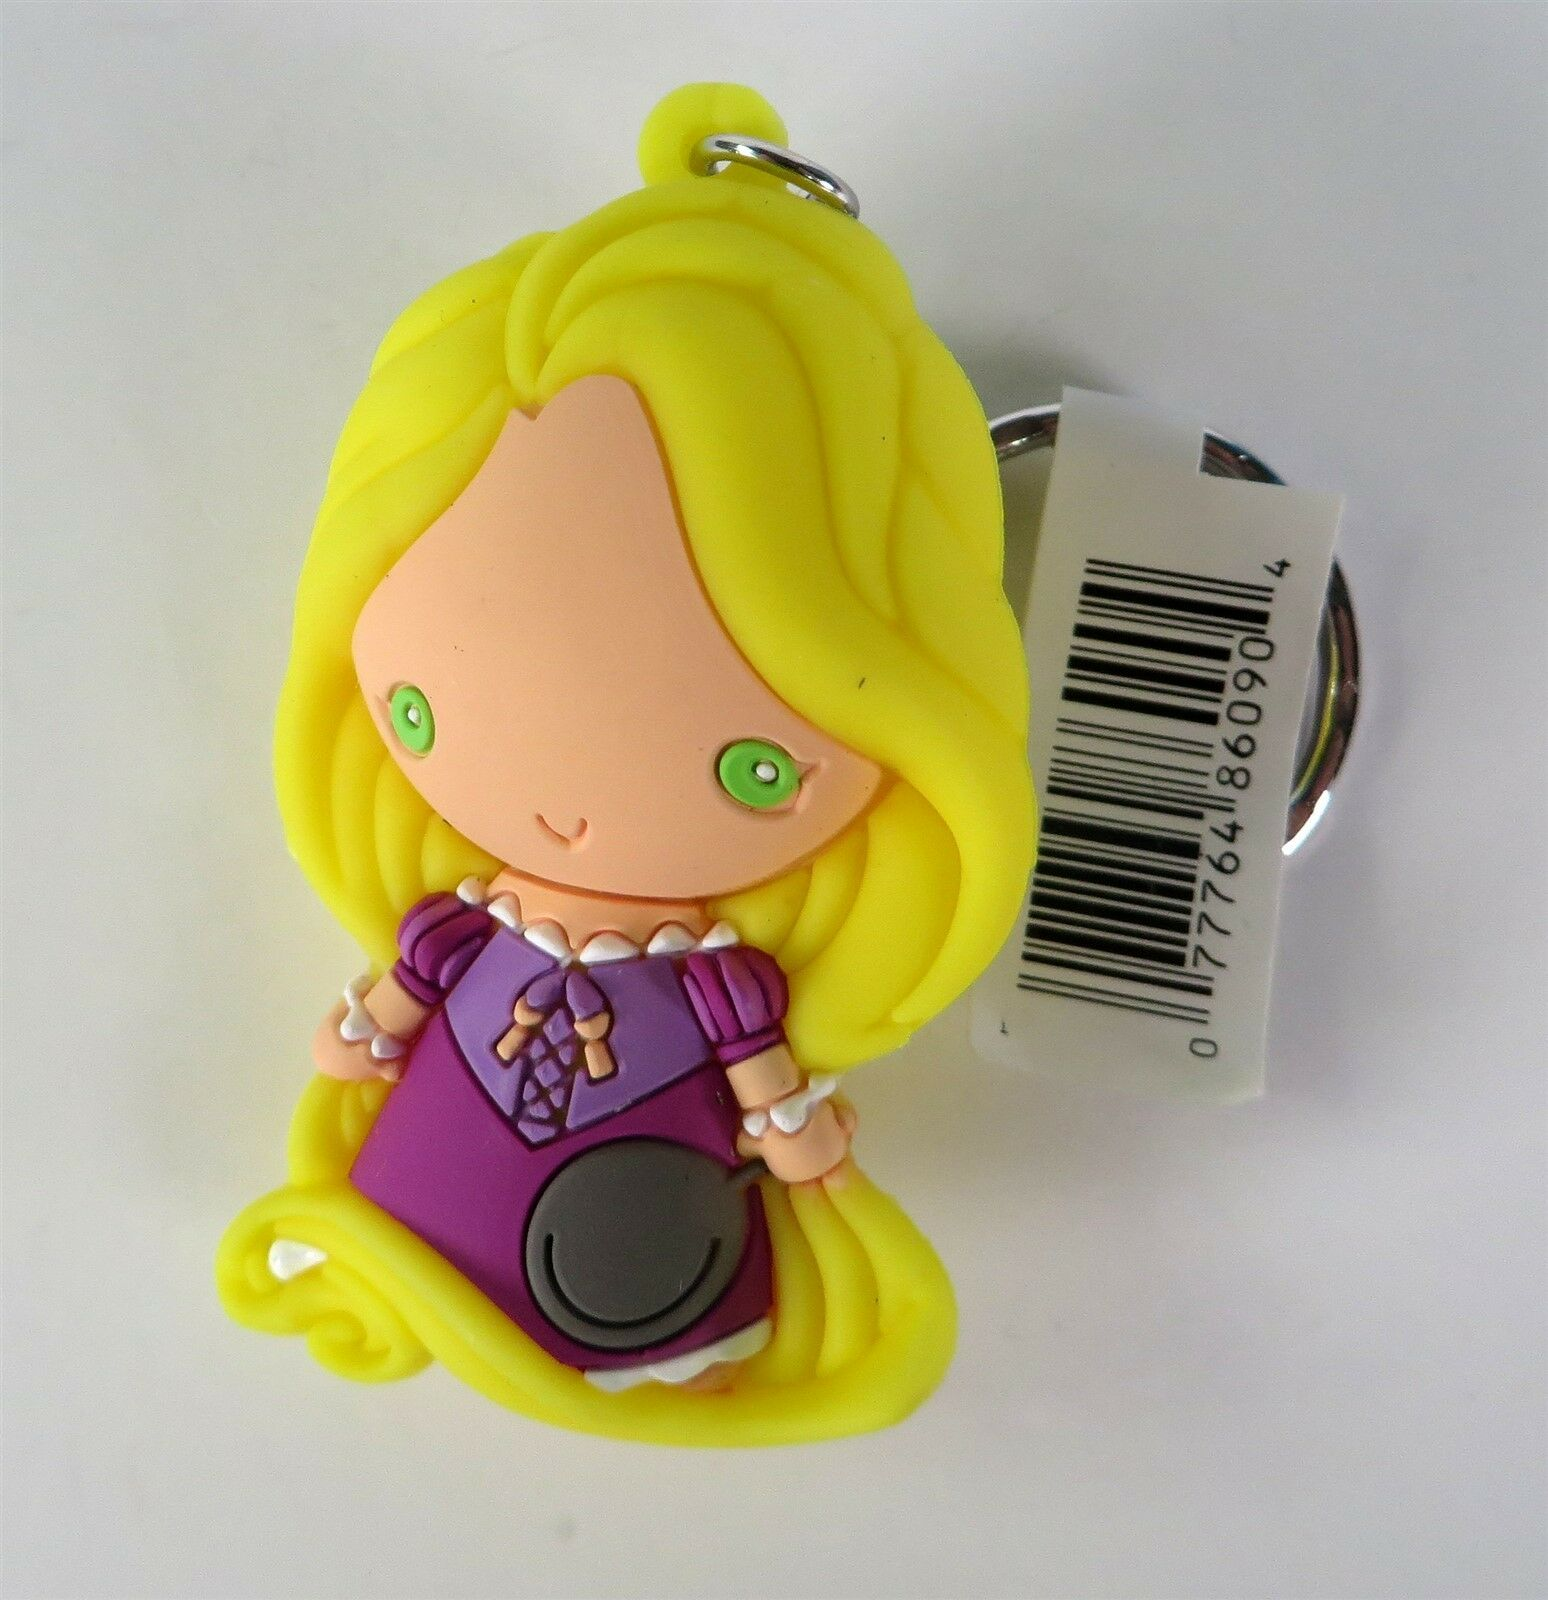 Disney Figural Keyring Series 9 Rapunzel Tangled Blind Bag Figure New 1 Of 1only 4 Available See More